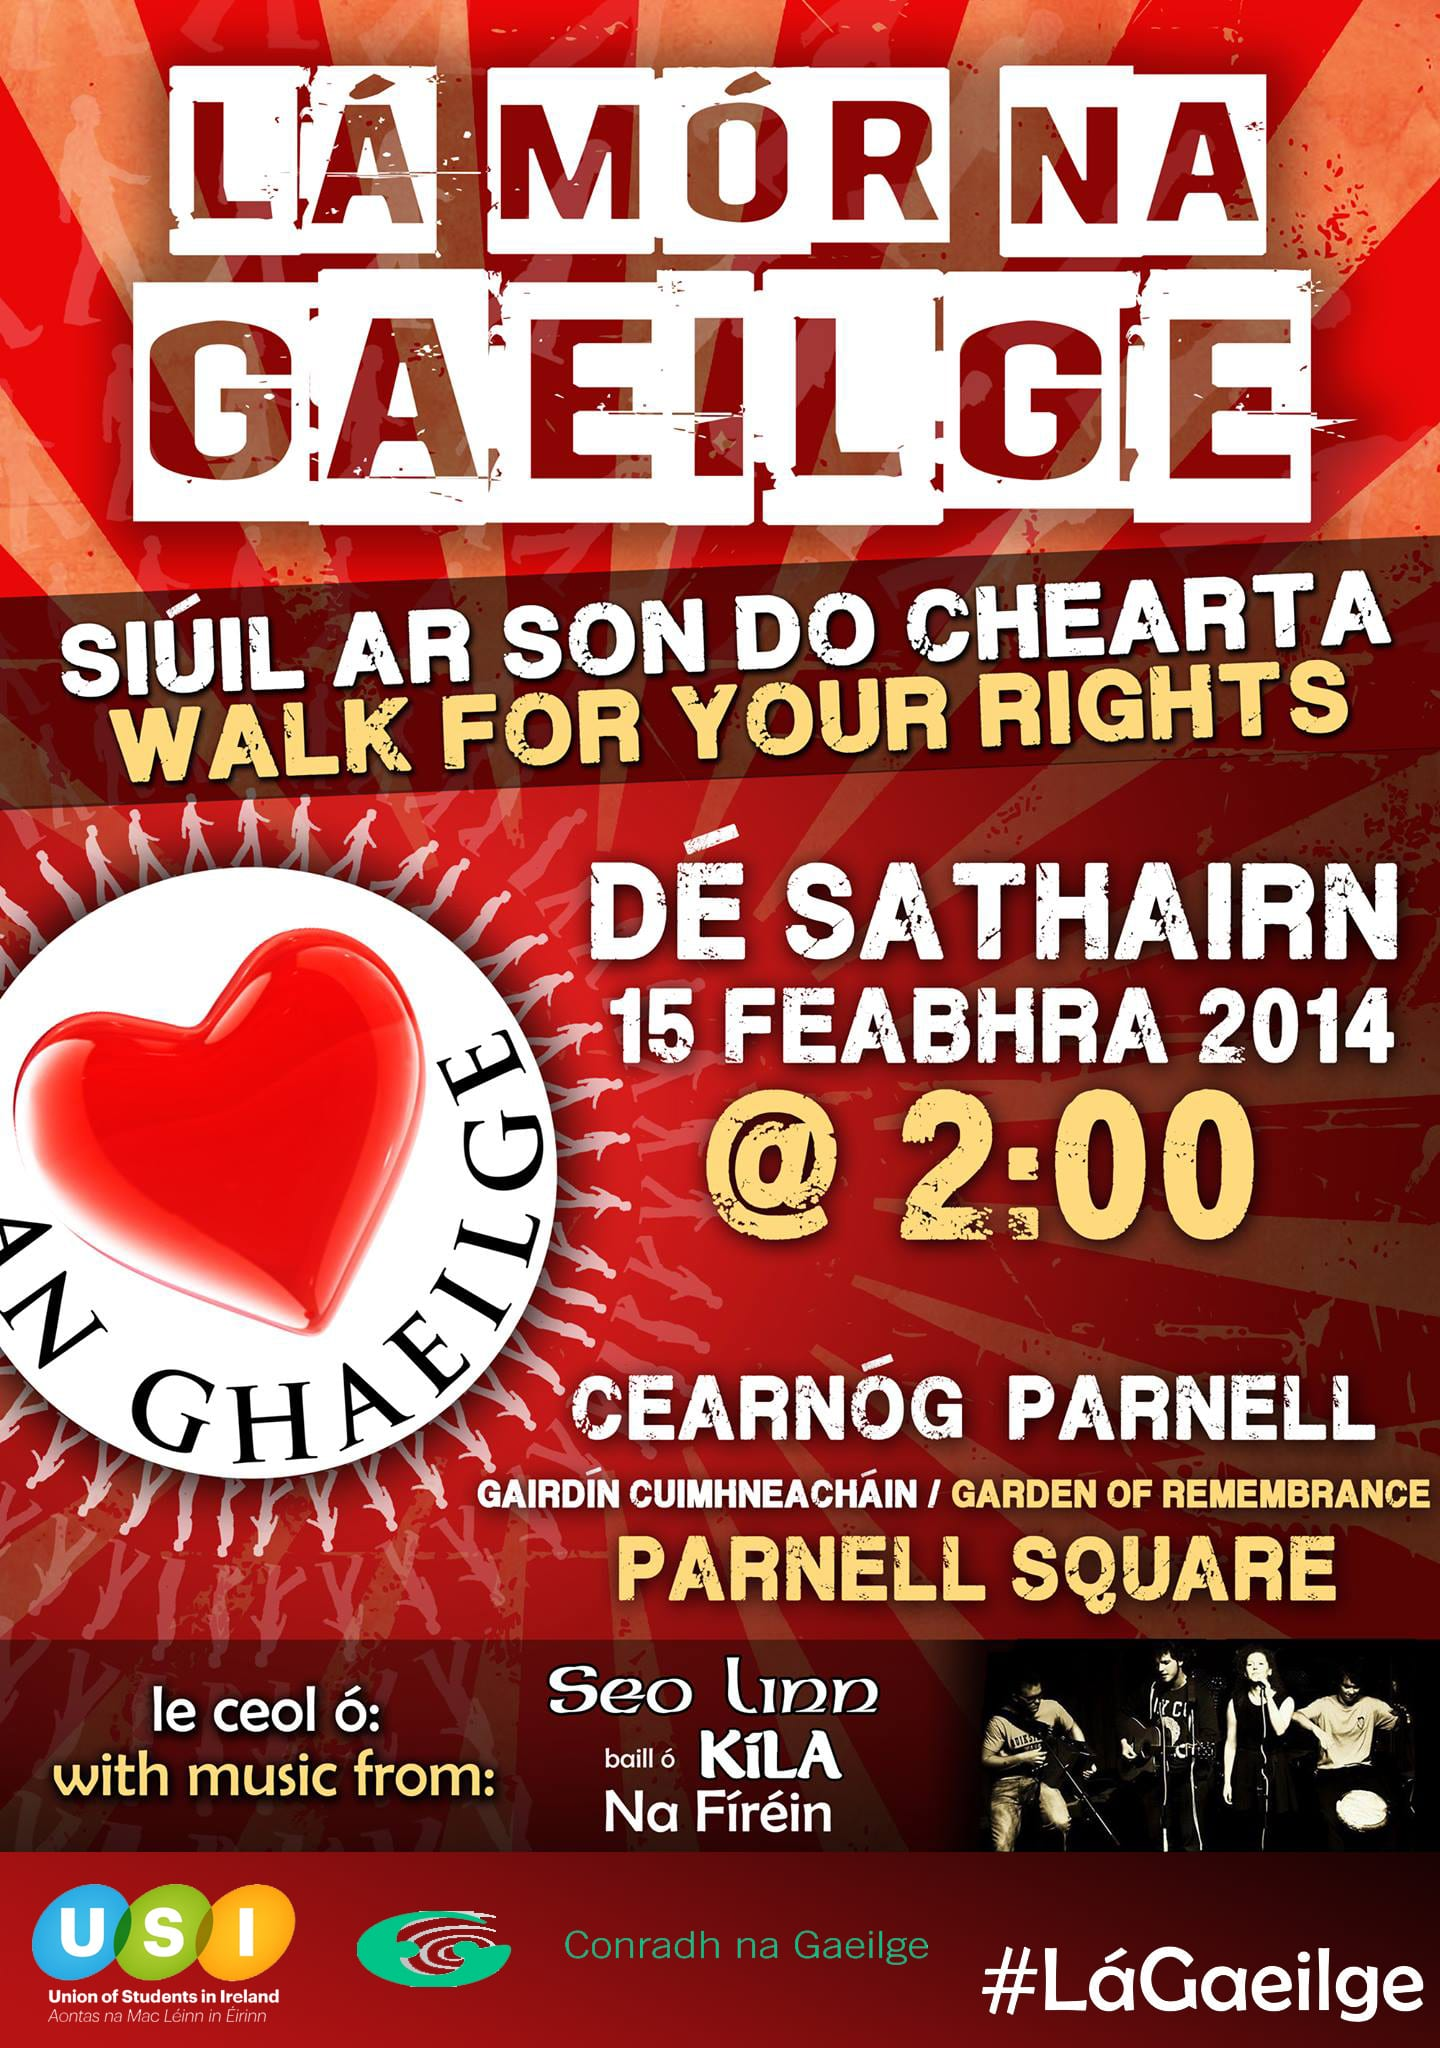 Students Marching for Irish Language Rights